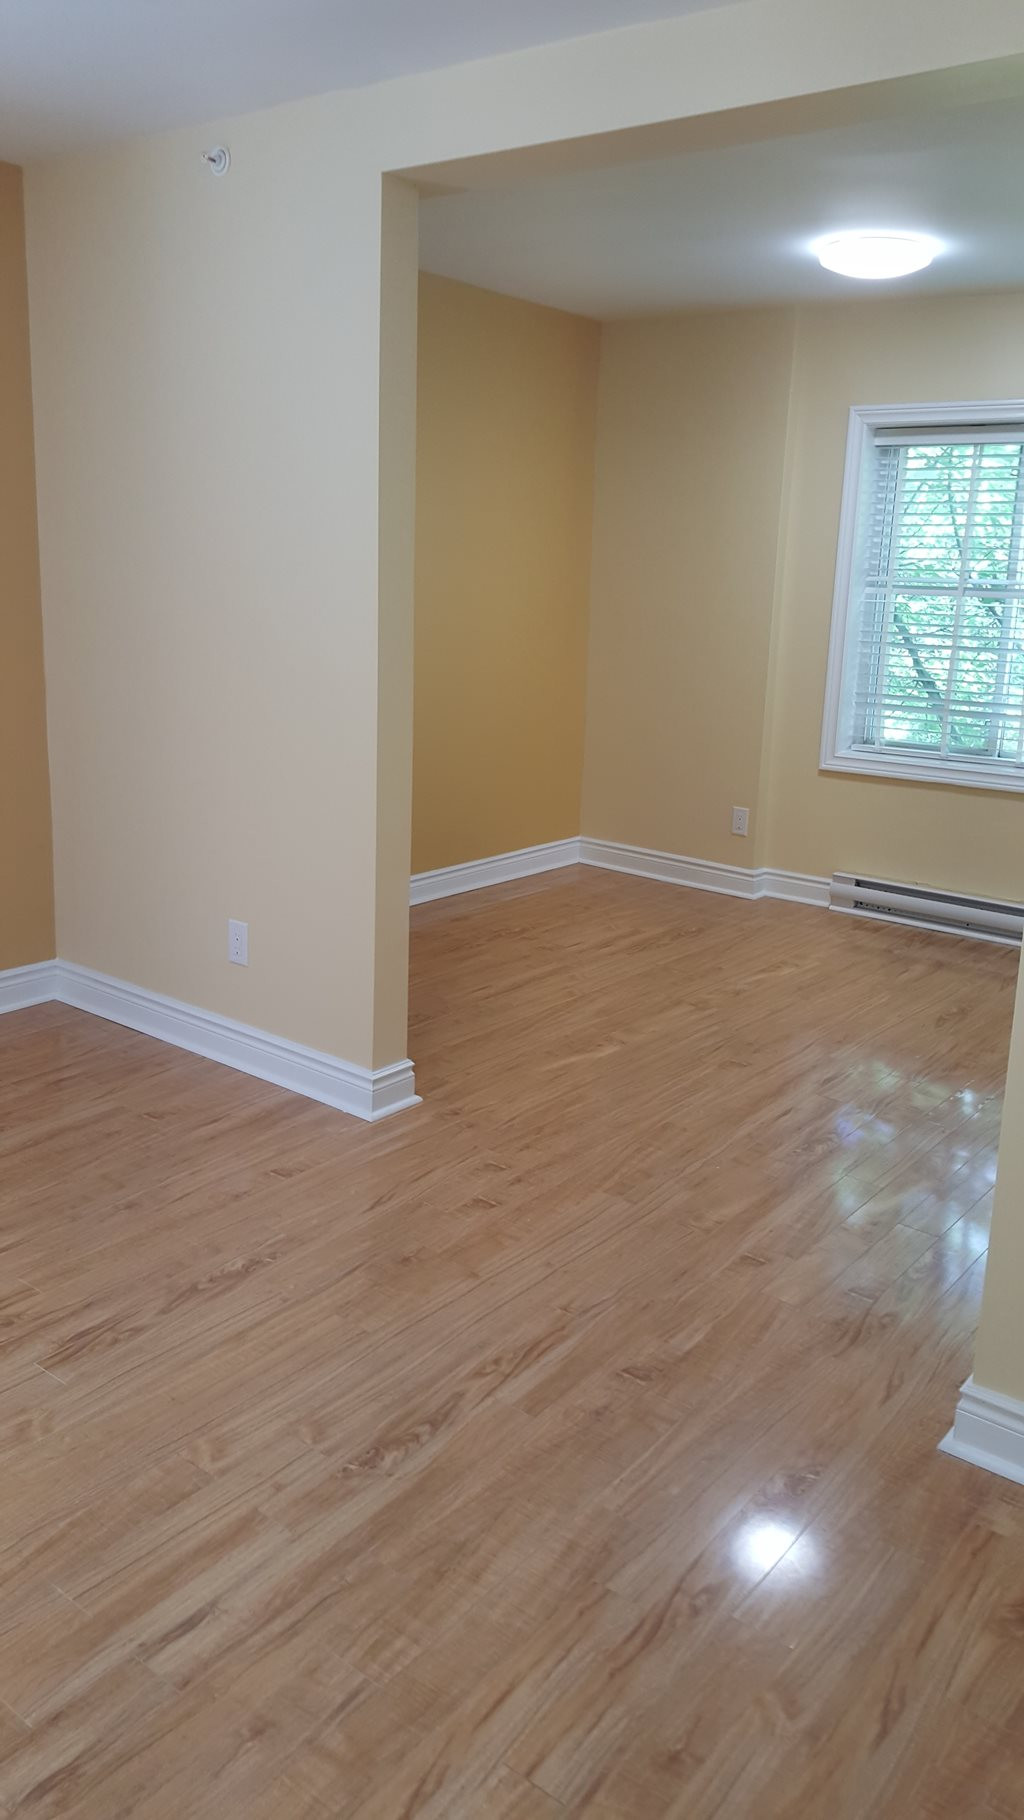 hardwood flooring dundas ontario of 50 retirement homes near dundas on a place for mom in 274552